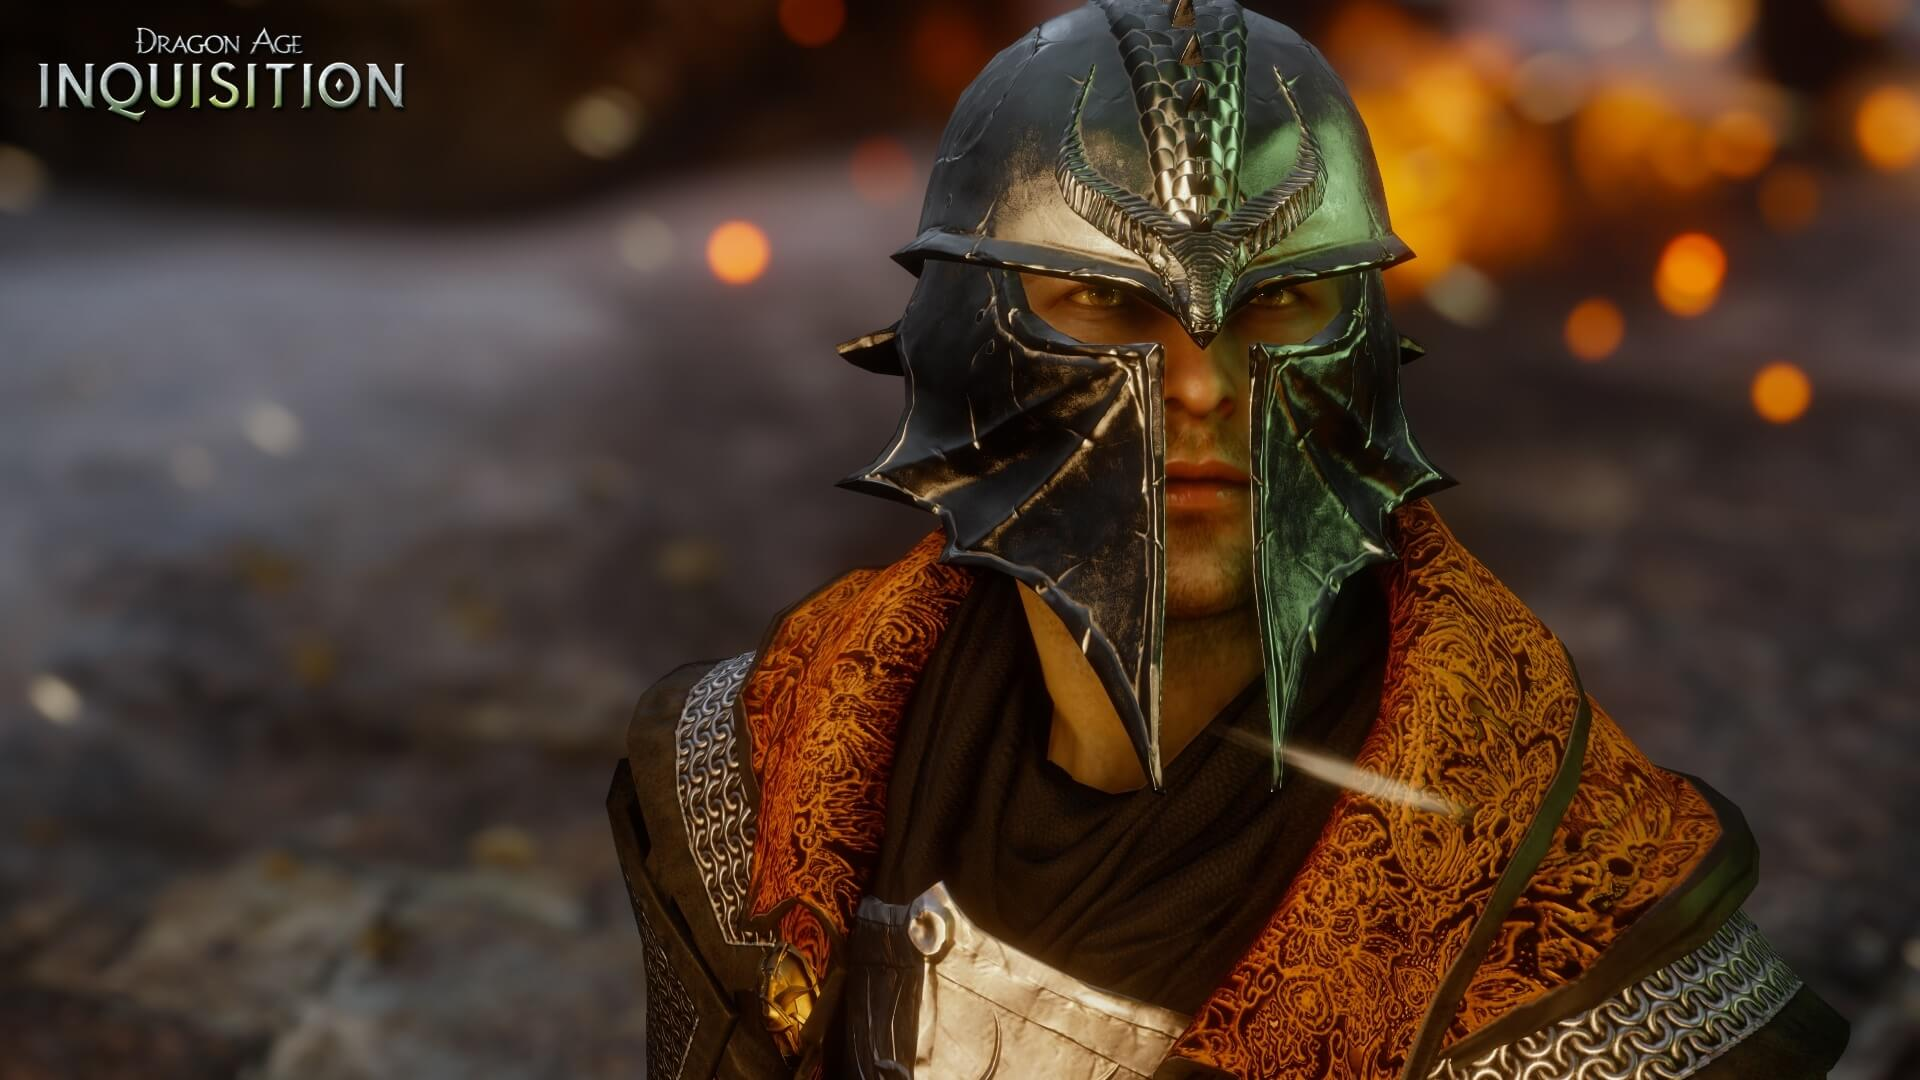 'Dragon Age: Inquisition' Takes Player Power To 'The Next Level'